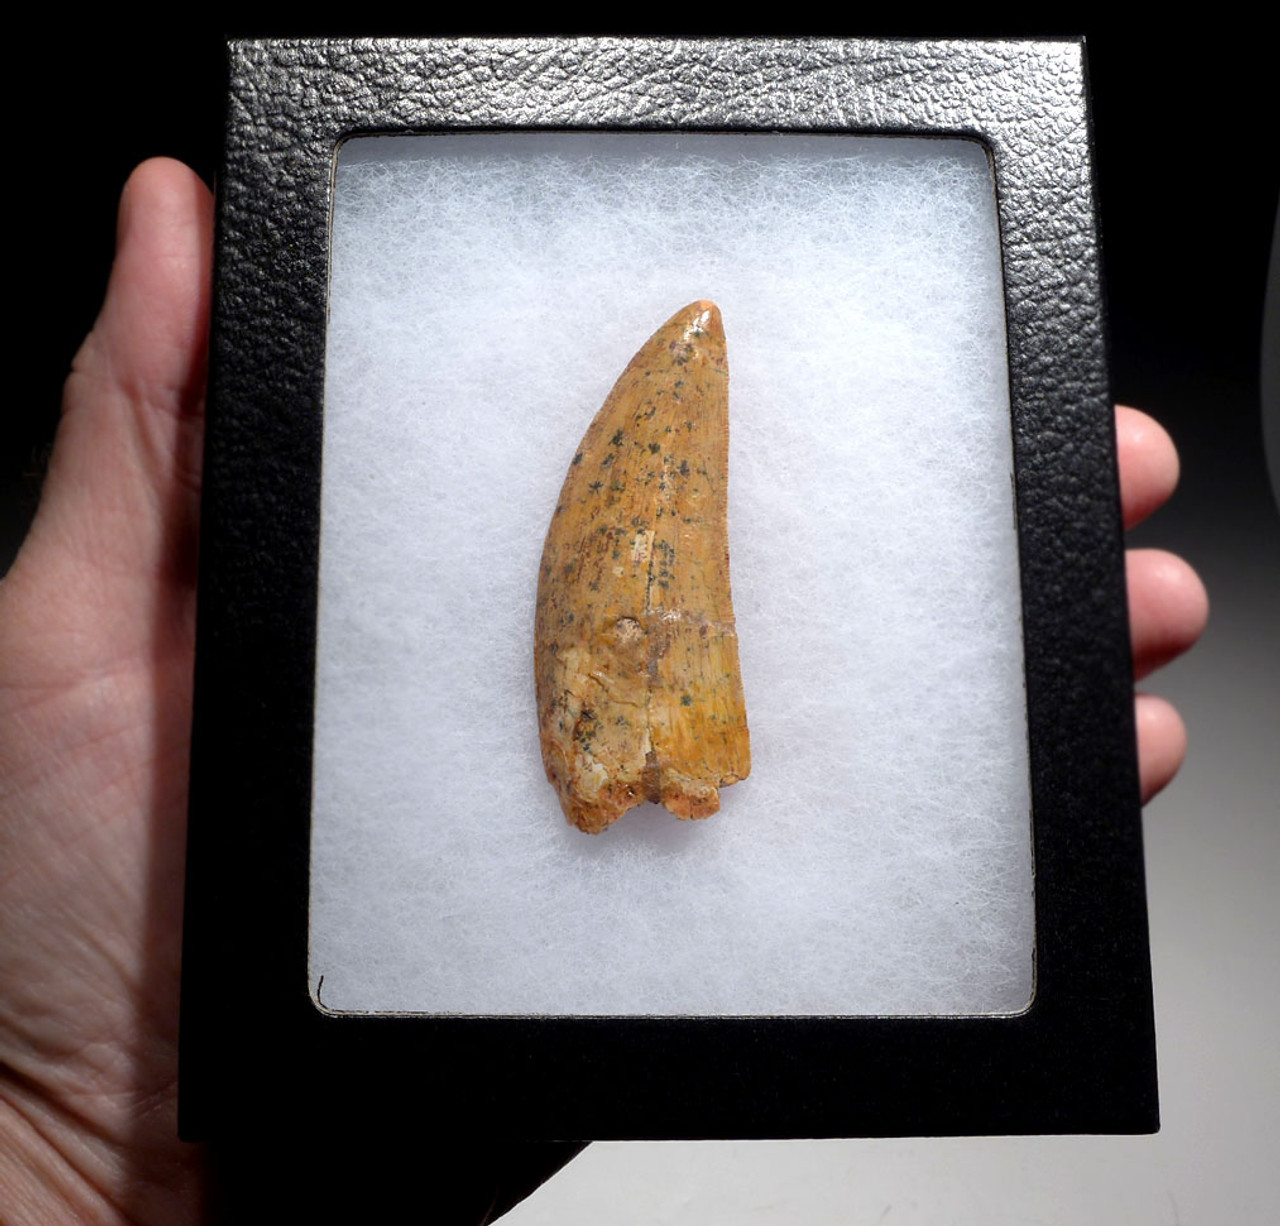 LARGE 3 INCH CARCHARODONTOSAURUS FOSSIL TOOTH FROM THE LARGEST MEAT-EATING DINOSAUR *DT2-113